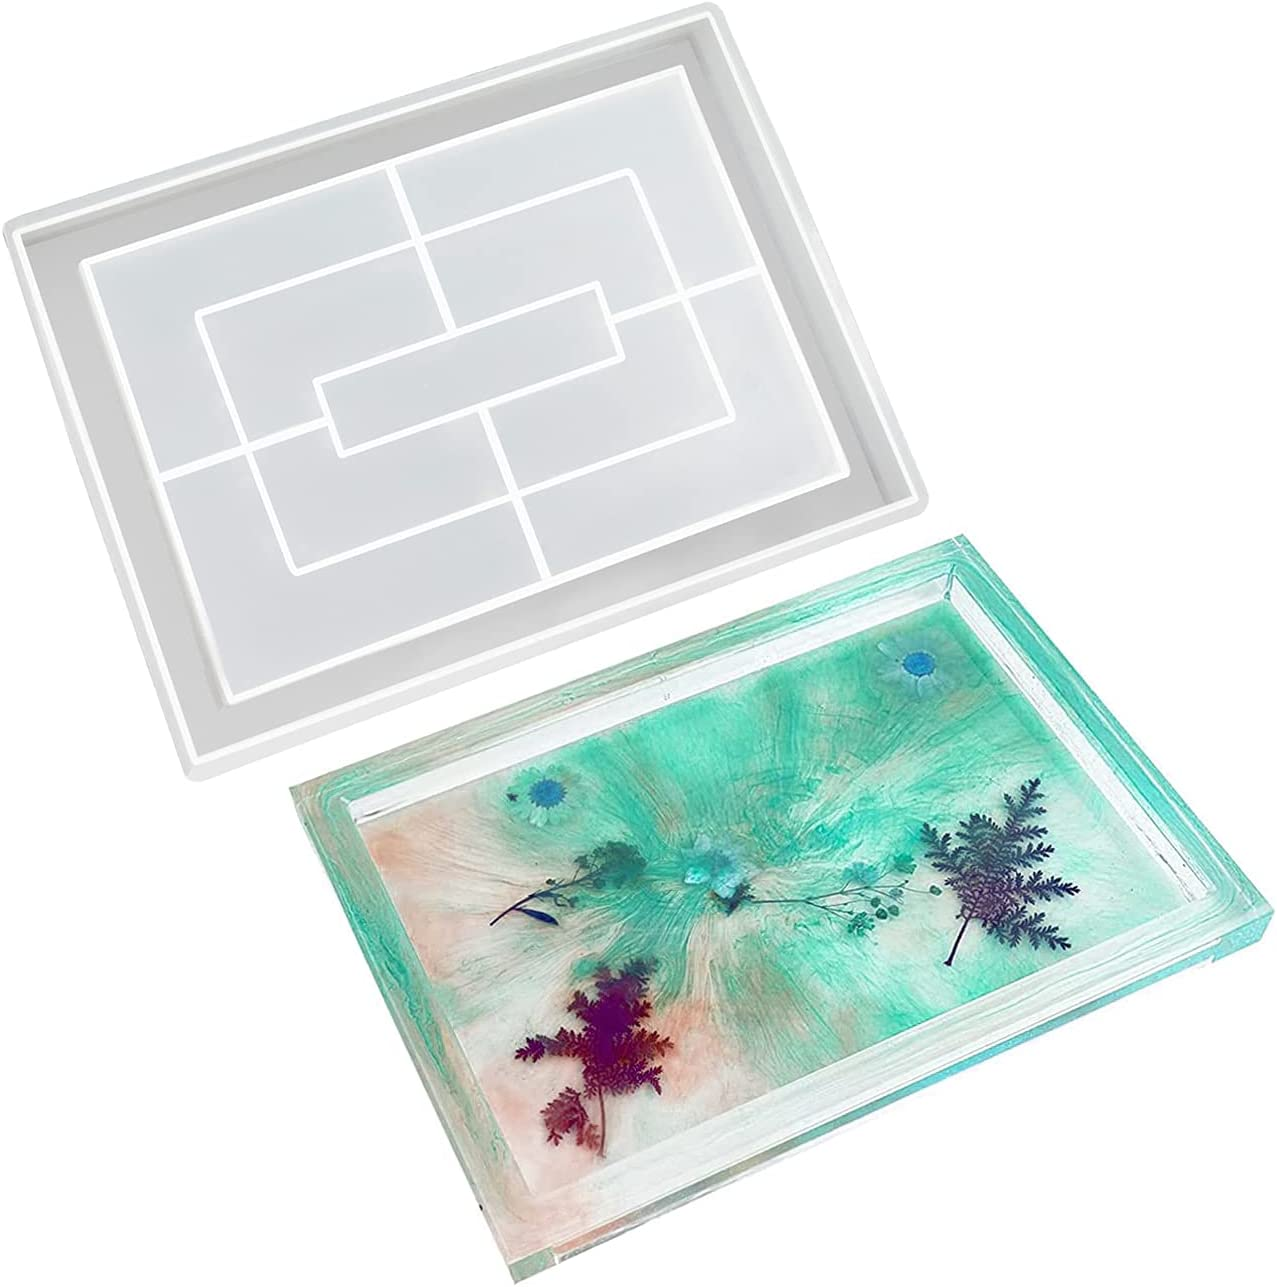 Rolling Latest item Tray Resin Molds Cheap mail order shopping fo Silicone Large Rectangle